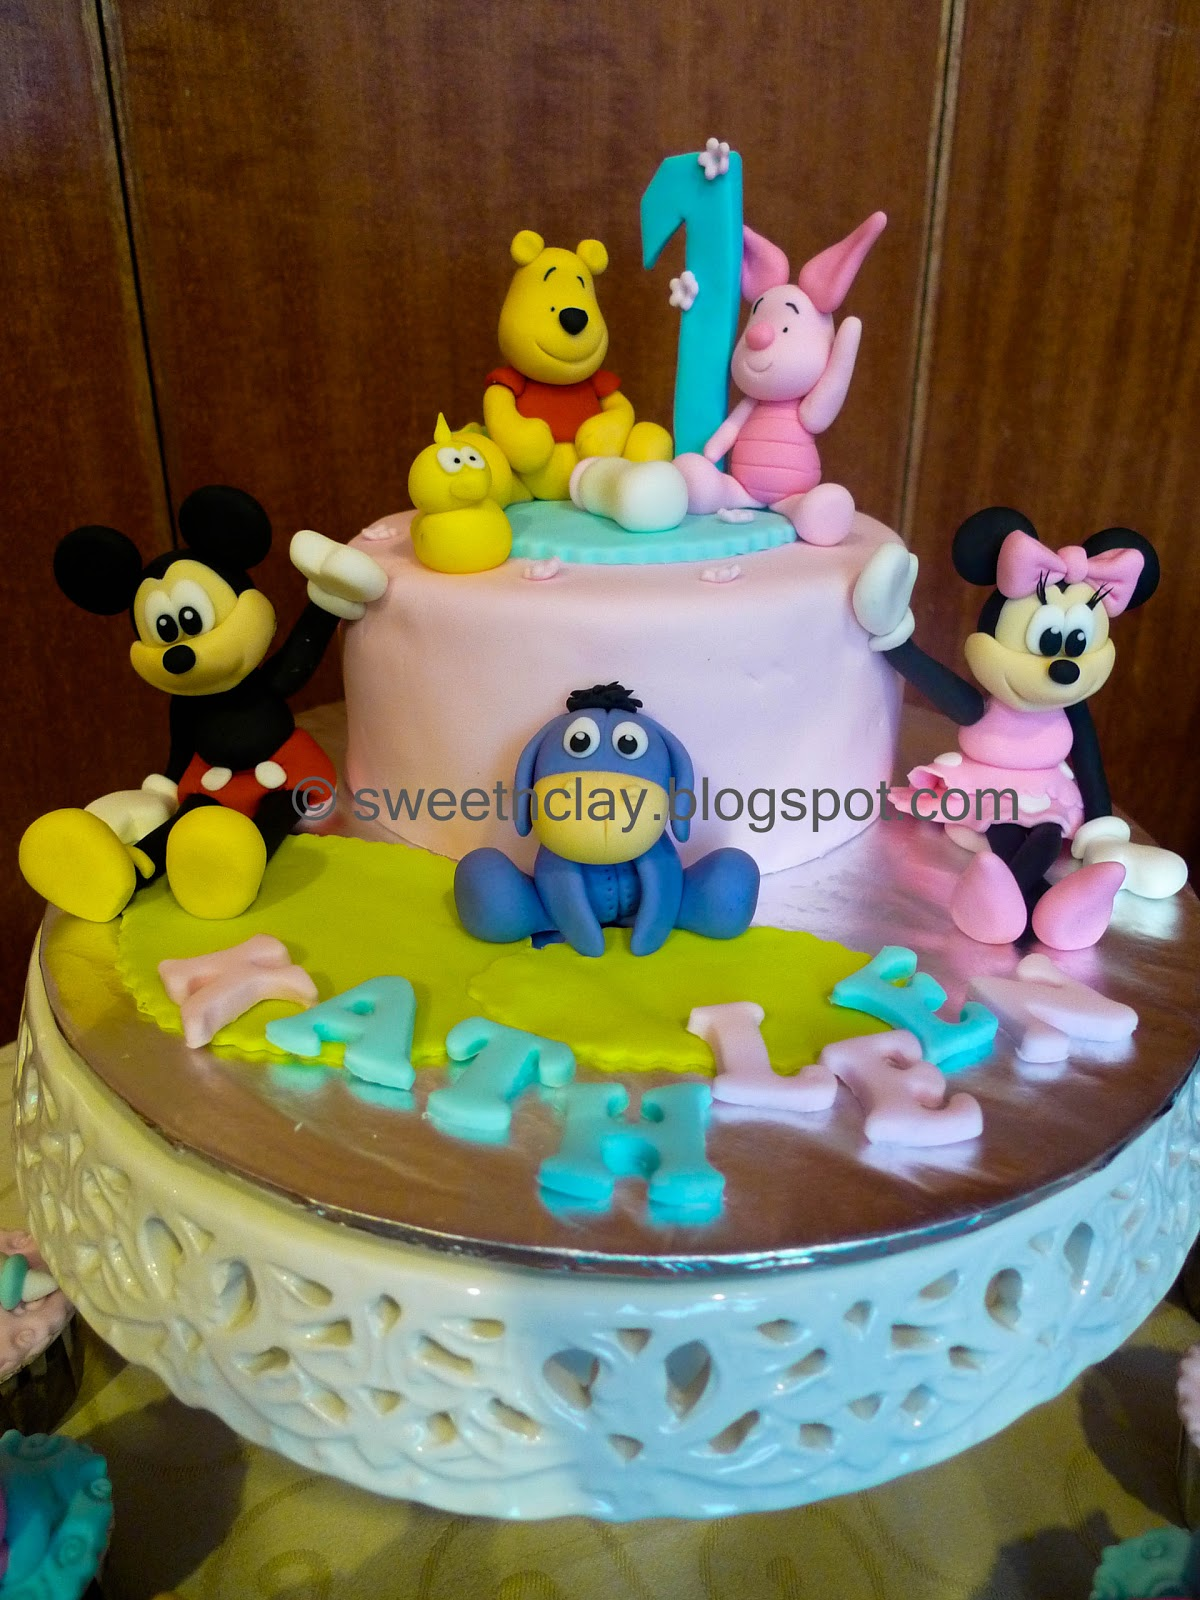 Sweet Amp Clay Kathleen First Birthday With Disney Friends